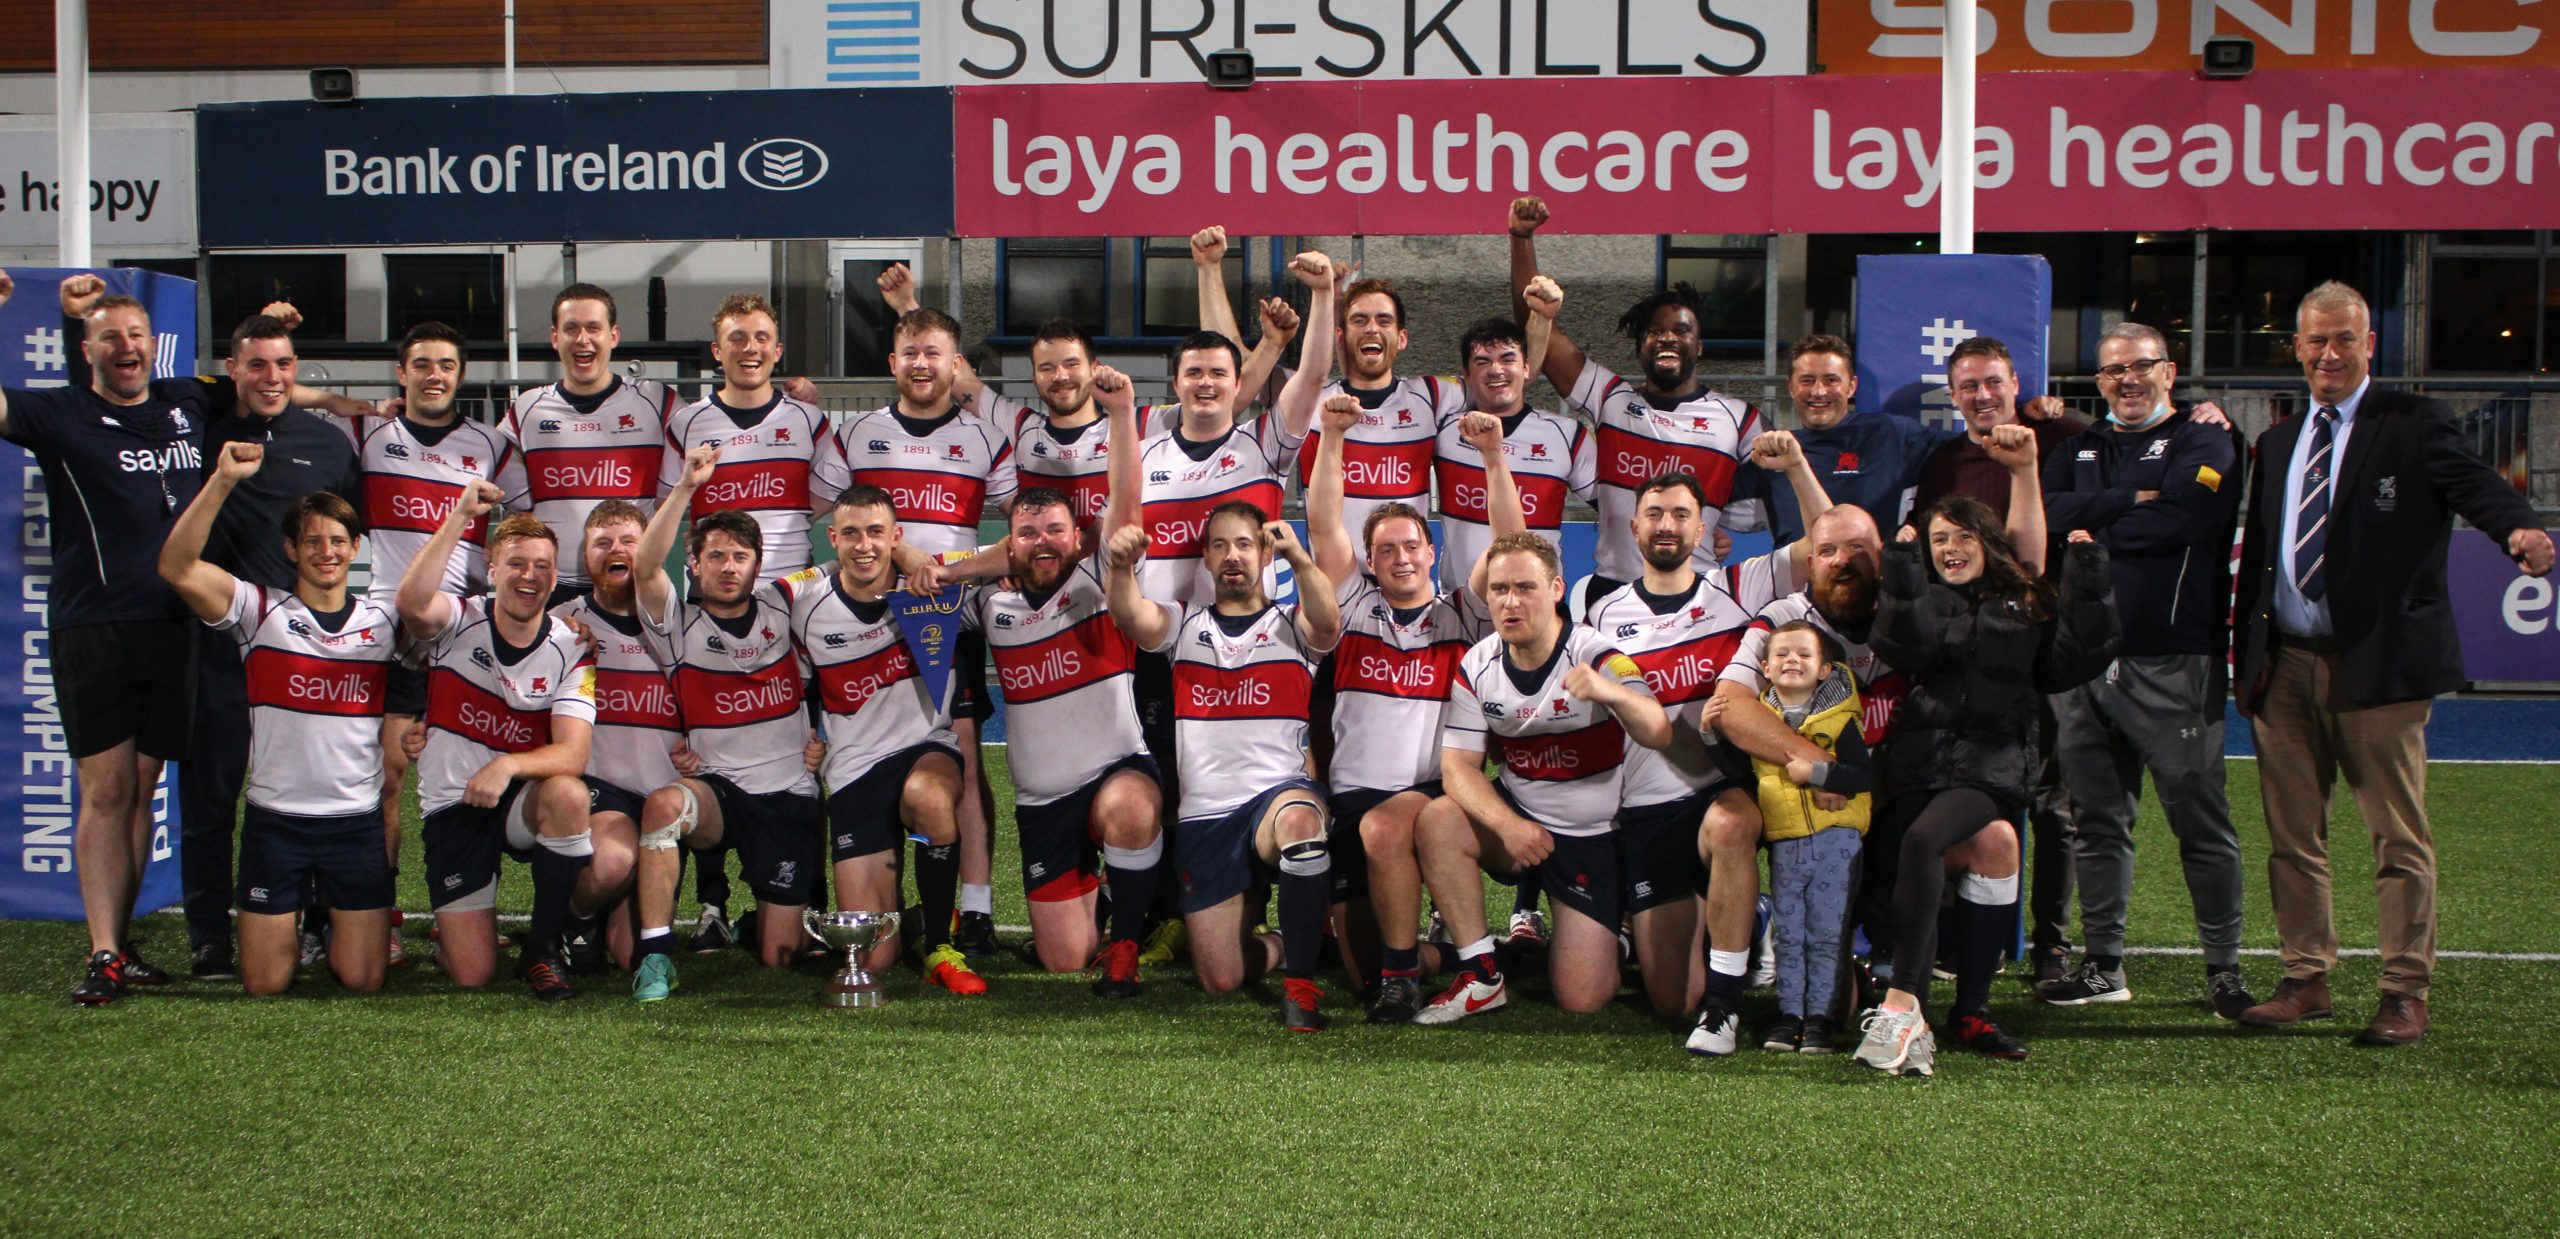 find out more about 4ths beat Coolmine to win First Cup of Last Season